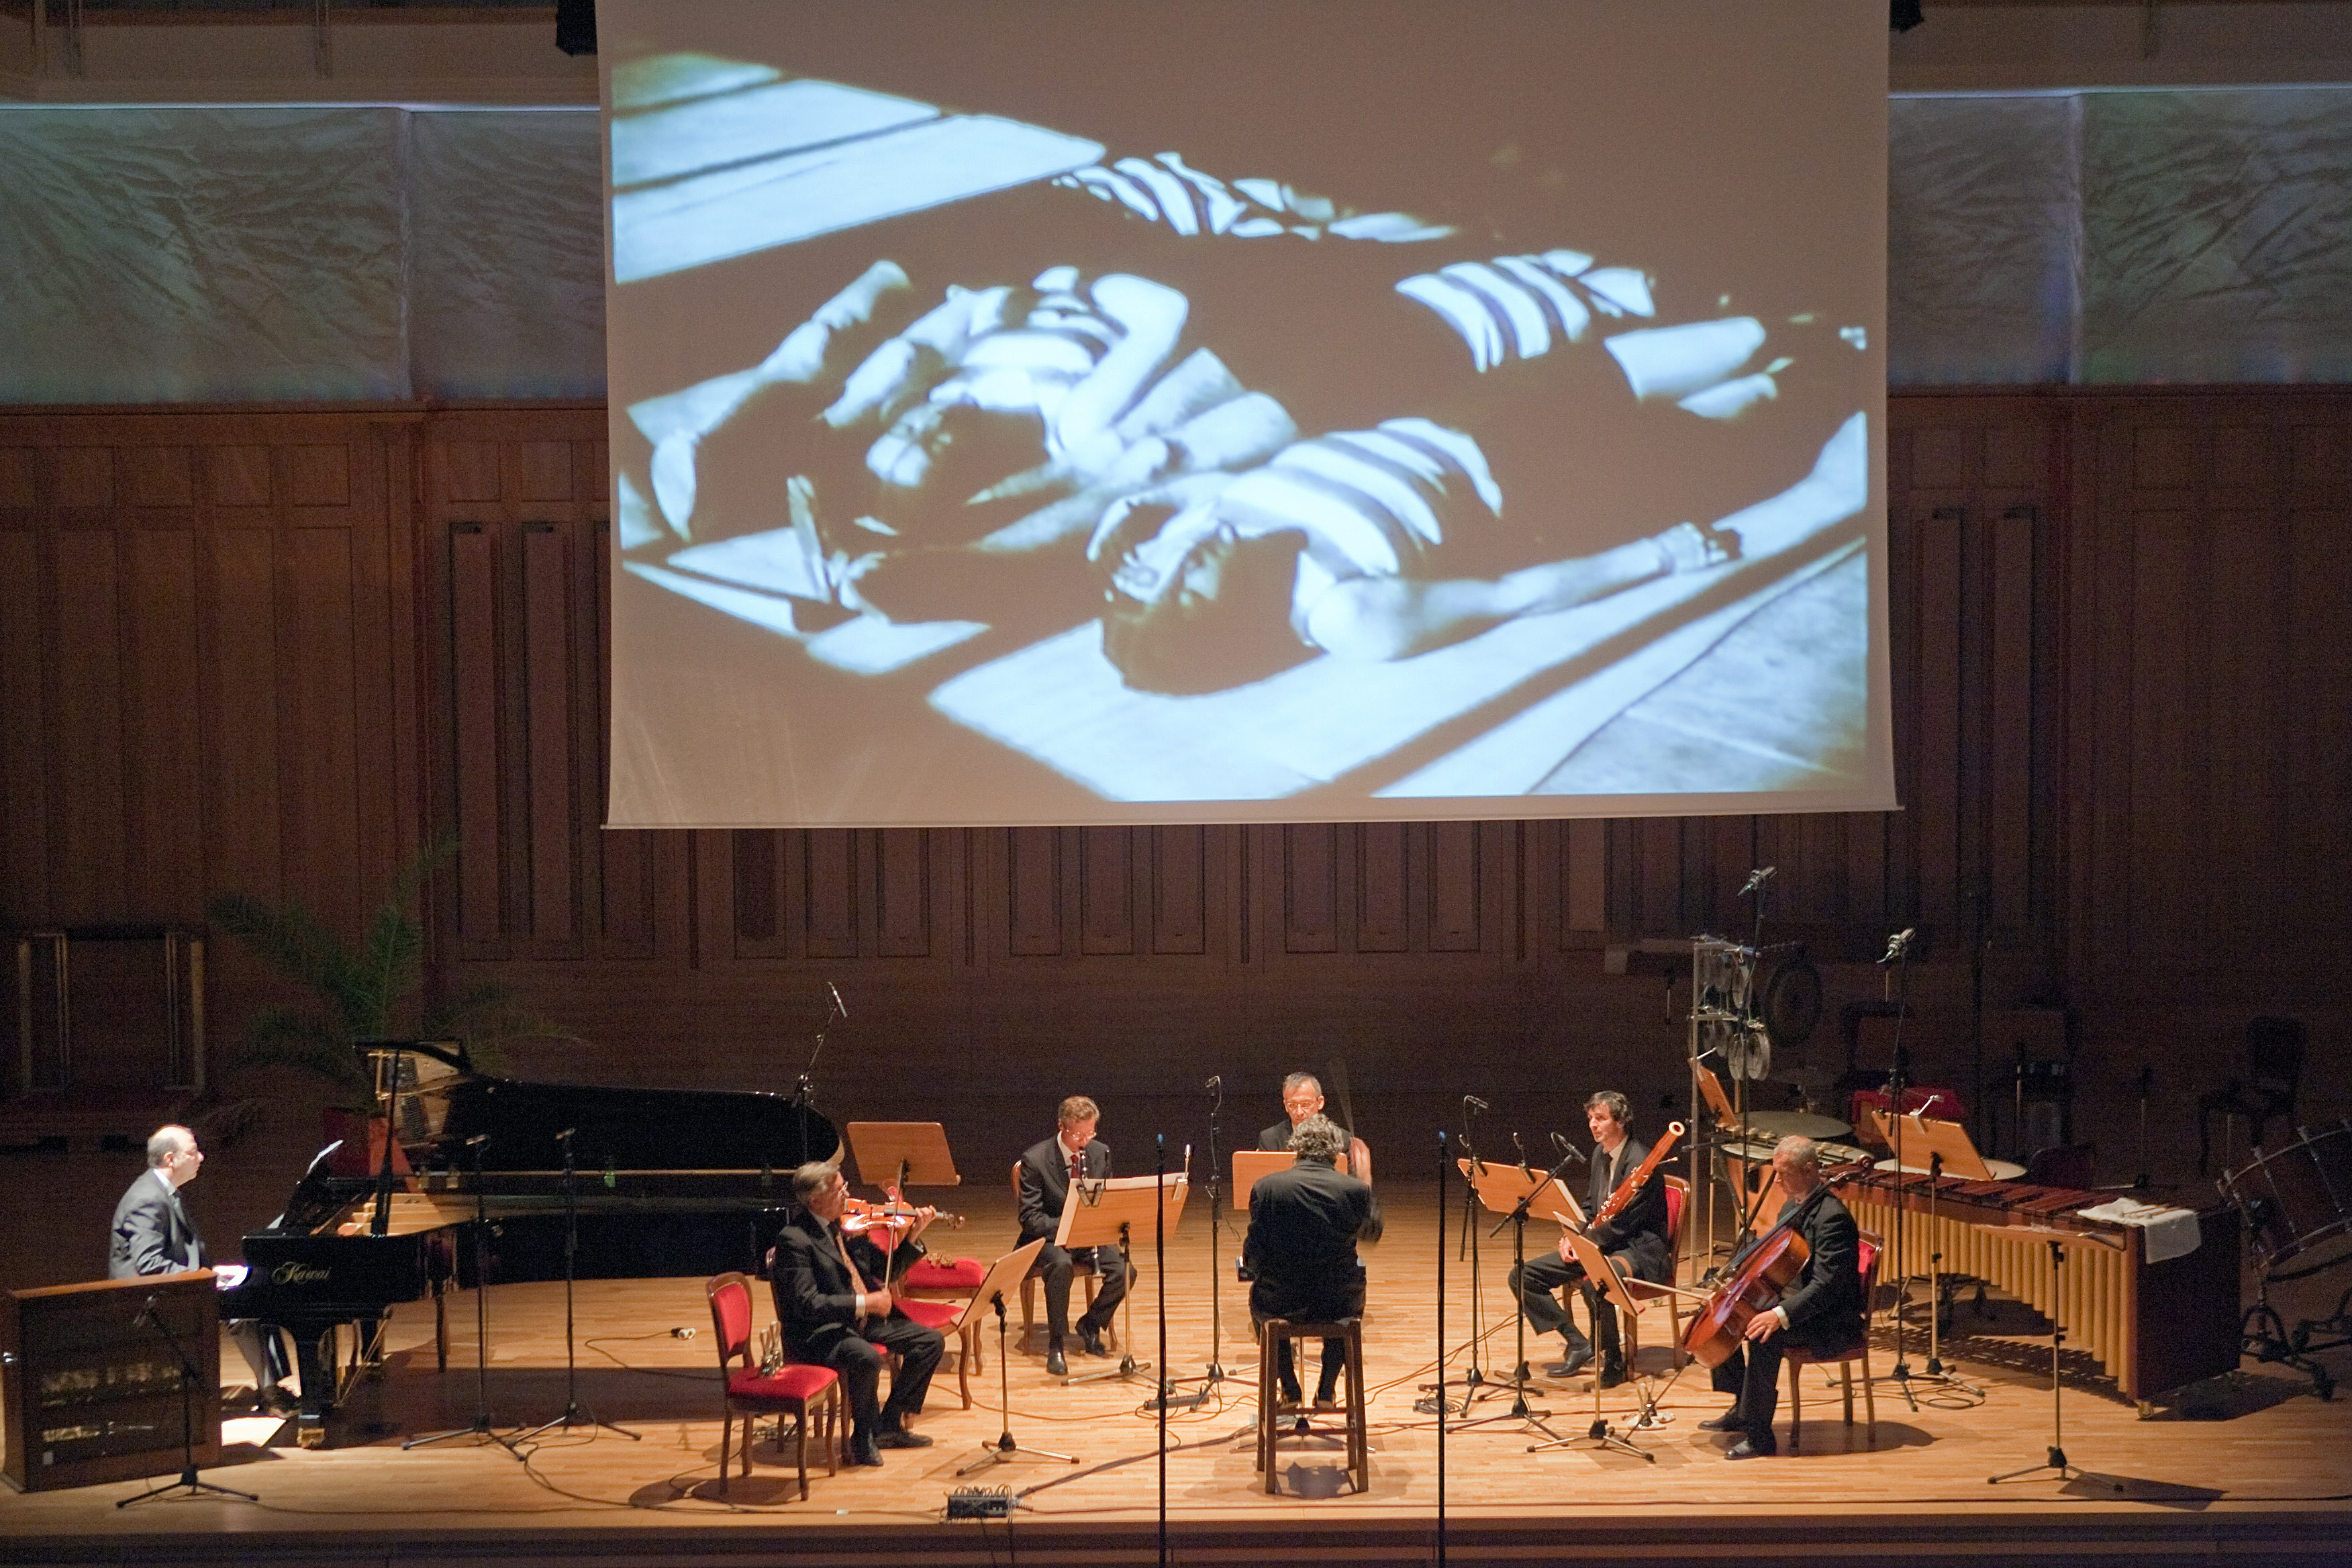 MAN RAY, LES MYSTÈRES DU CHÂTEAU DE DÉ, WITH MUSIC BY GEORGES AURIC, ACTOR IN THE FILM. ALBERTO CAPRIOLI CONDUCTING THE EX NOVO ENSEMBLE, DOBBIACO, GUSTAV MAHLER MUSIKWOCHEN, JULY 13, 2010, PHOTO MAX VERDOES